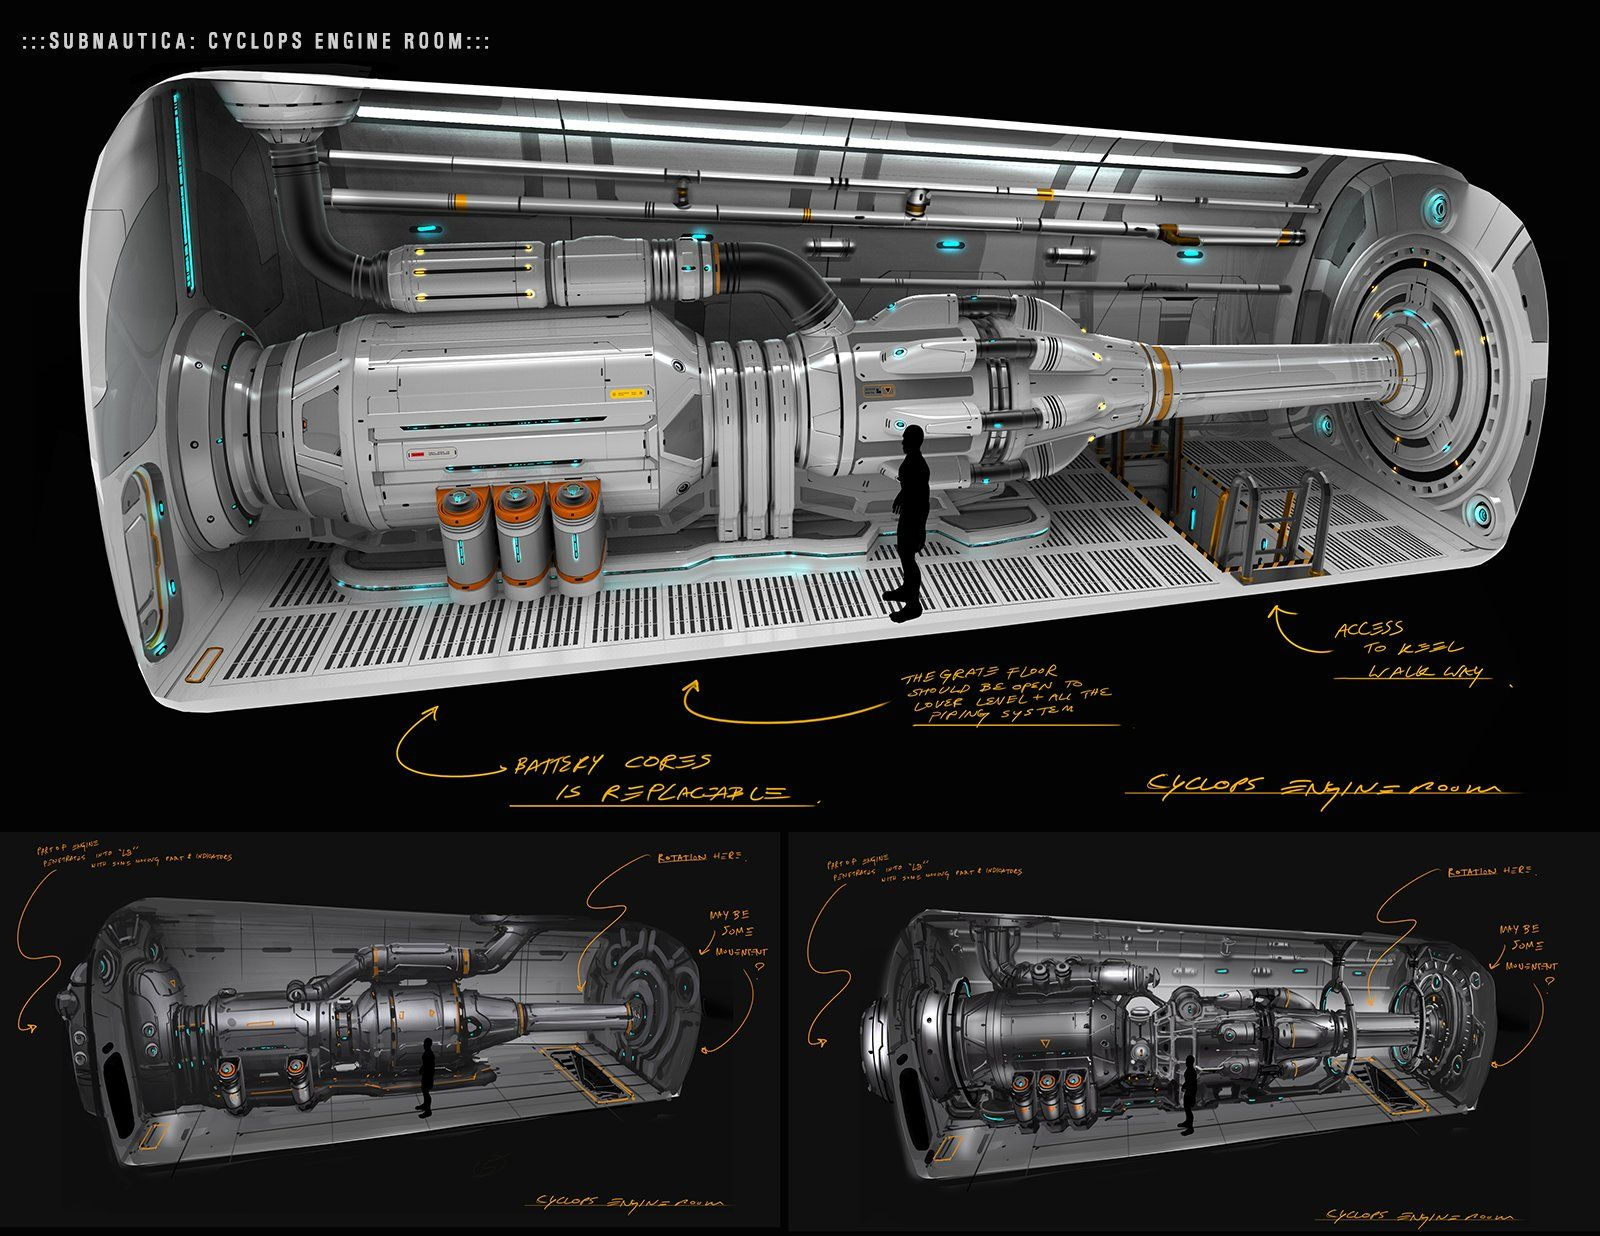 Black themed spaceship conceptual artwork and wallpapers 1 design - A Quick Sketch For A Submarine Design For The Indie Sci Fi Game Subnautica One Of My Favorite Unused Designs From The Game Have A Great Weekend Everyone